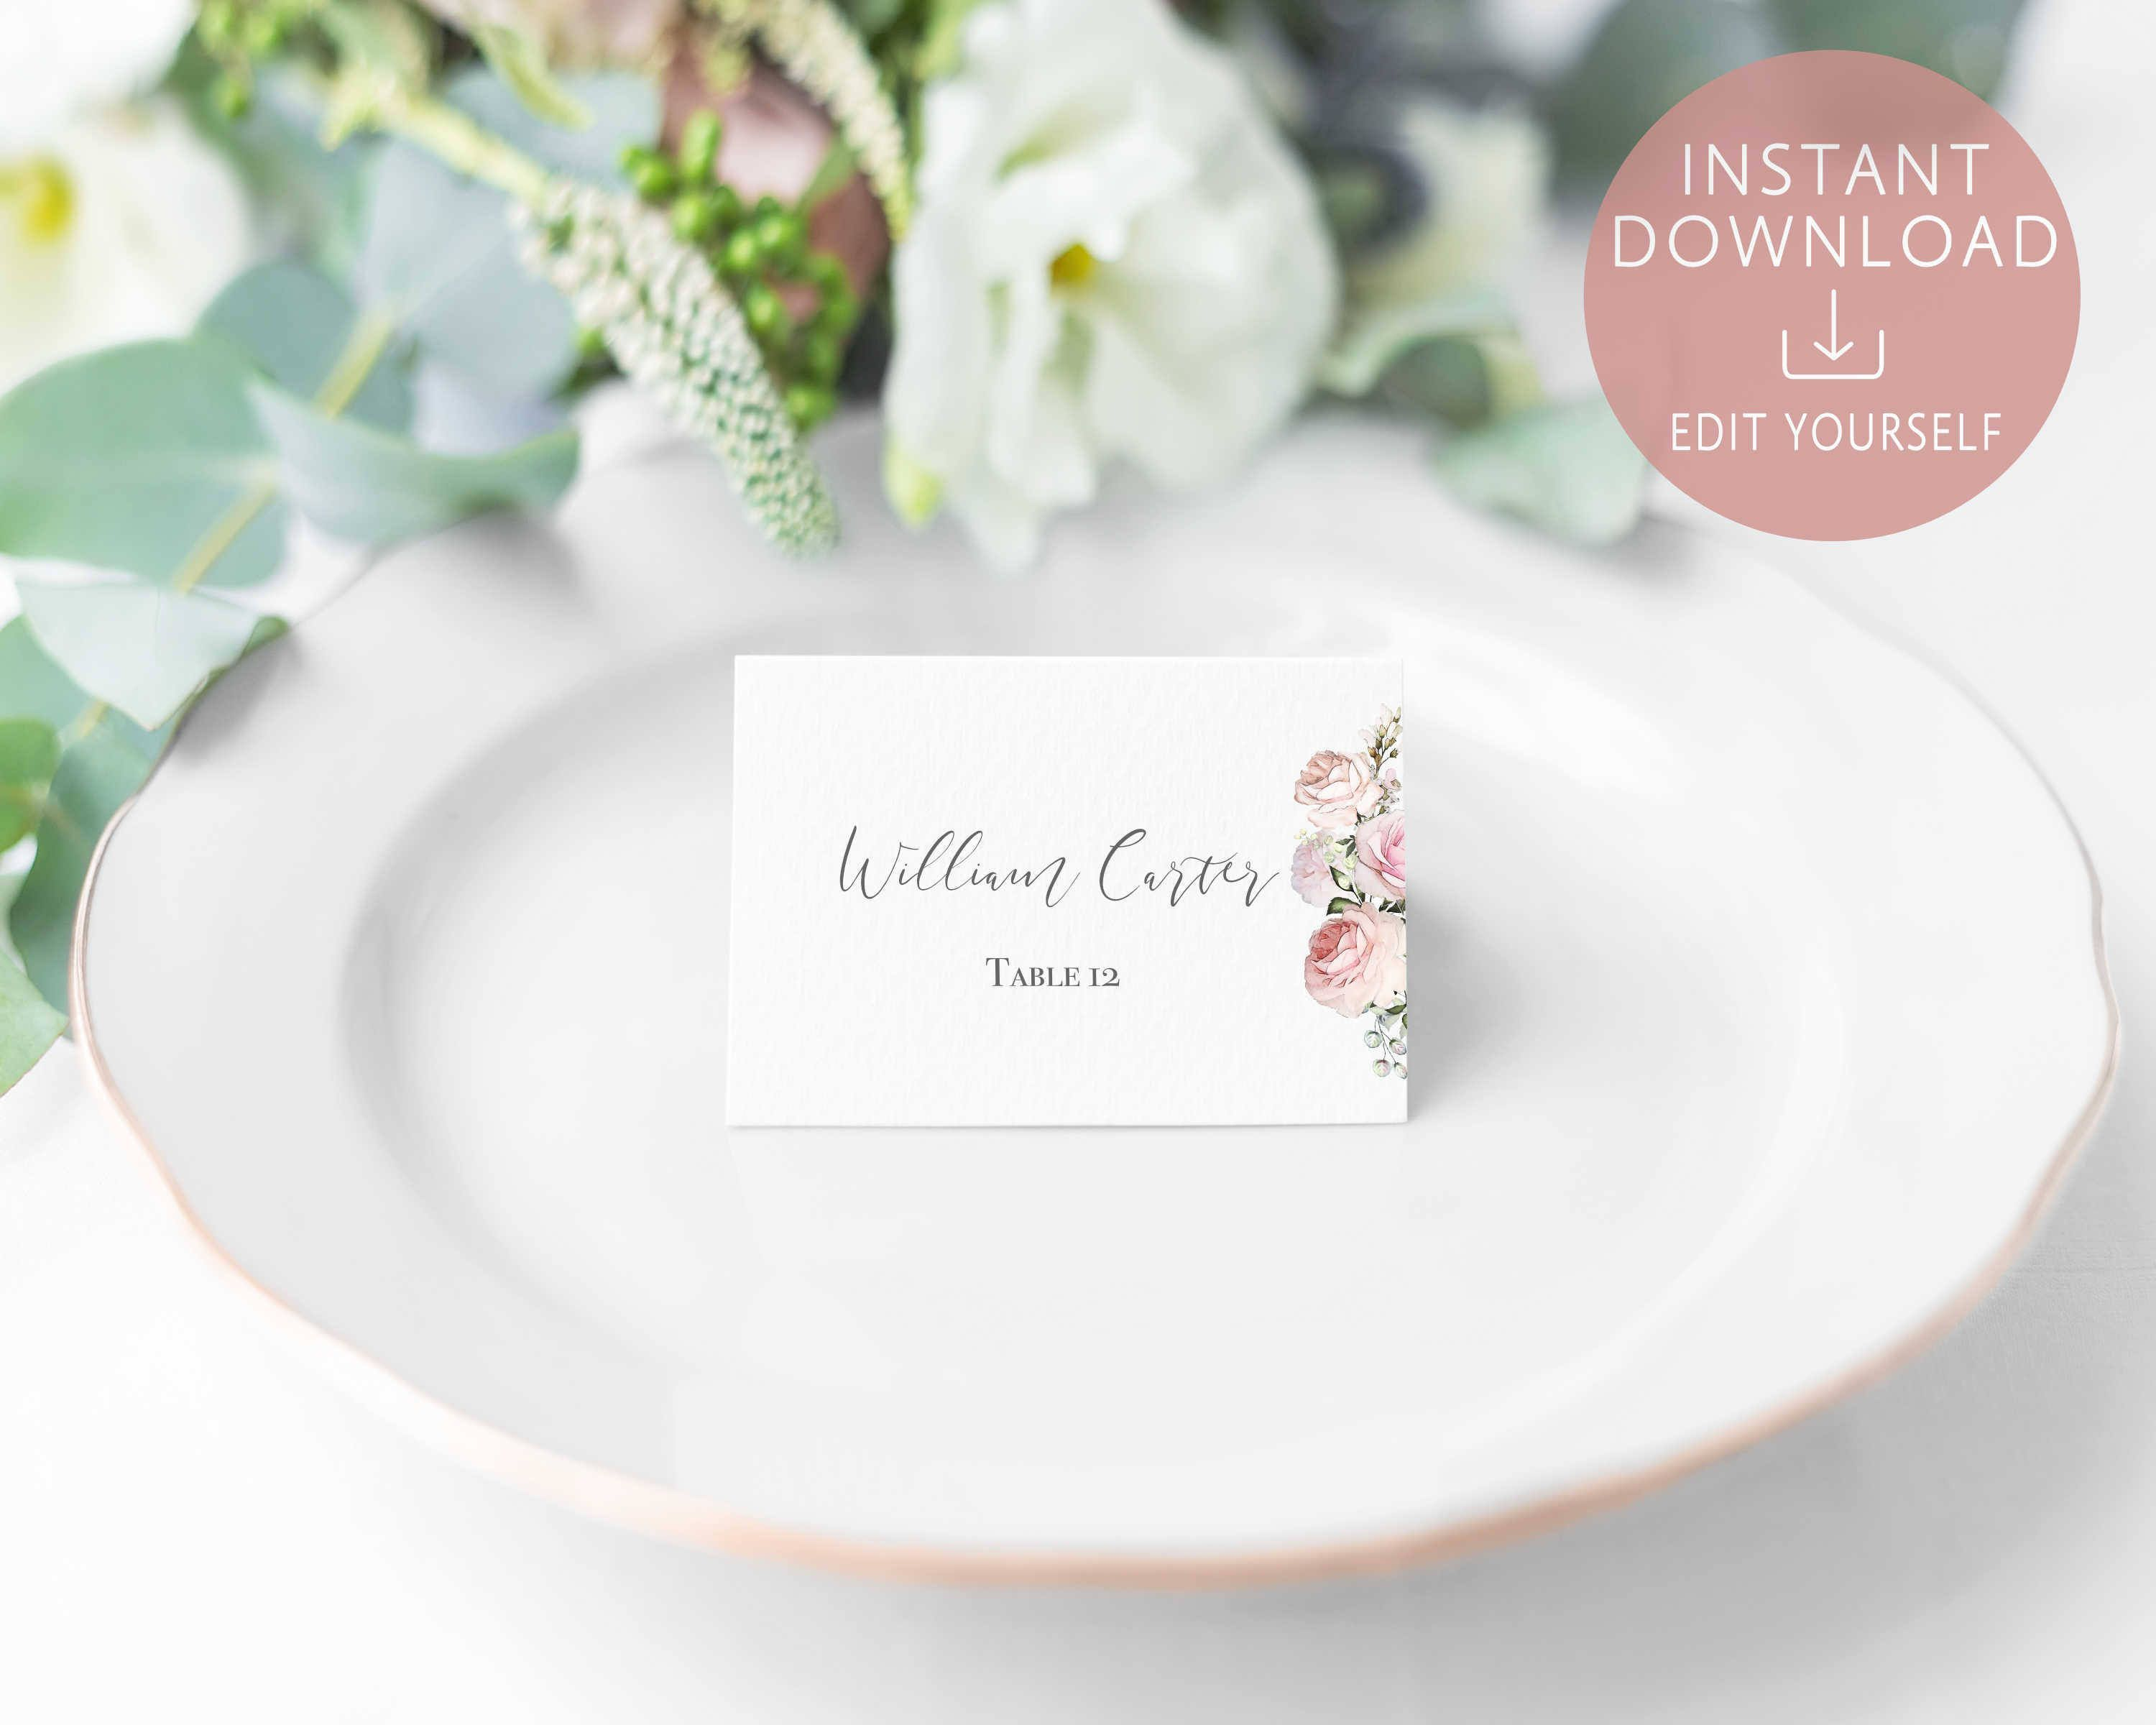 004 Surprising Free Table Name Place Card Template Design  PlacementFull